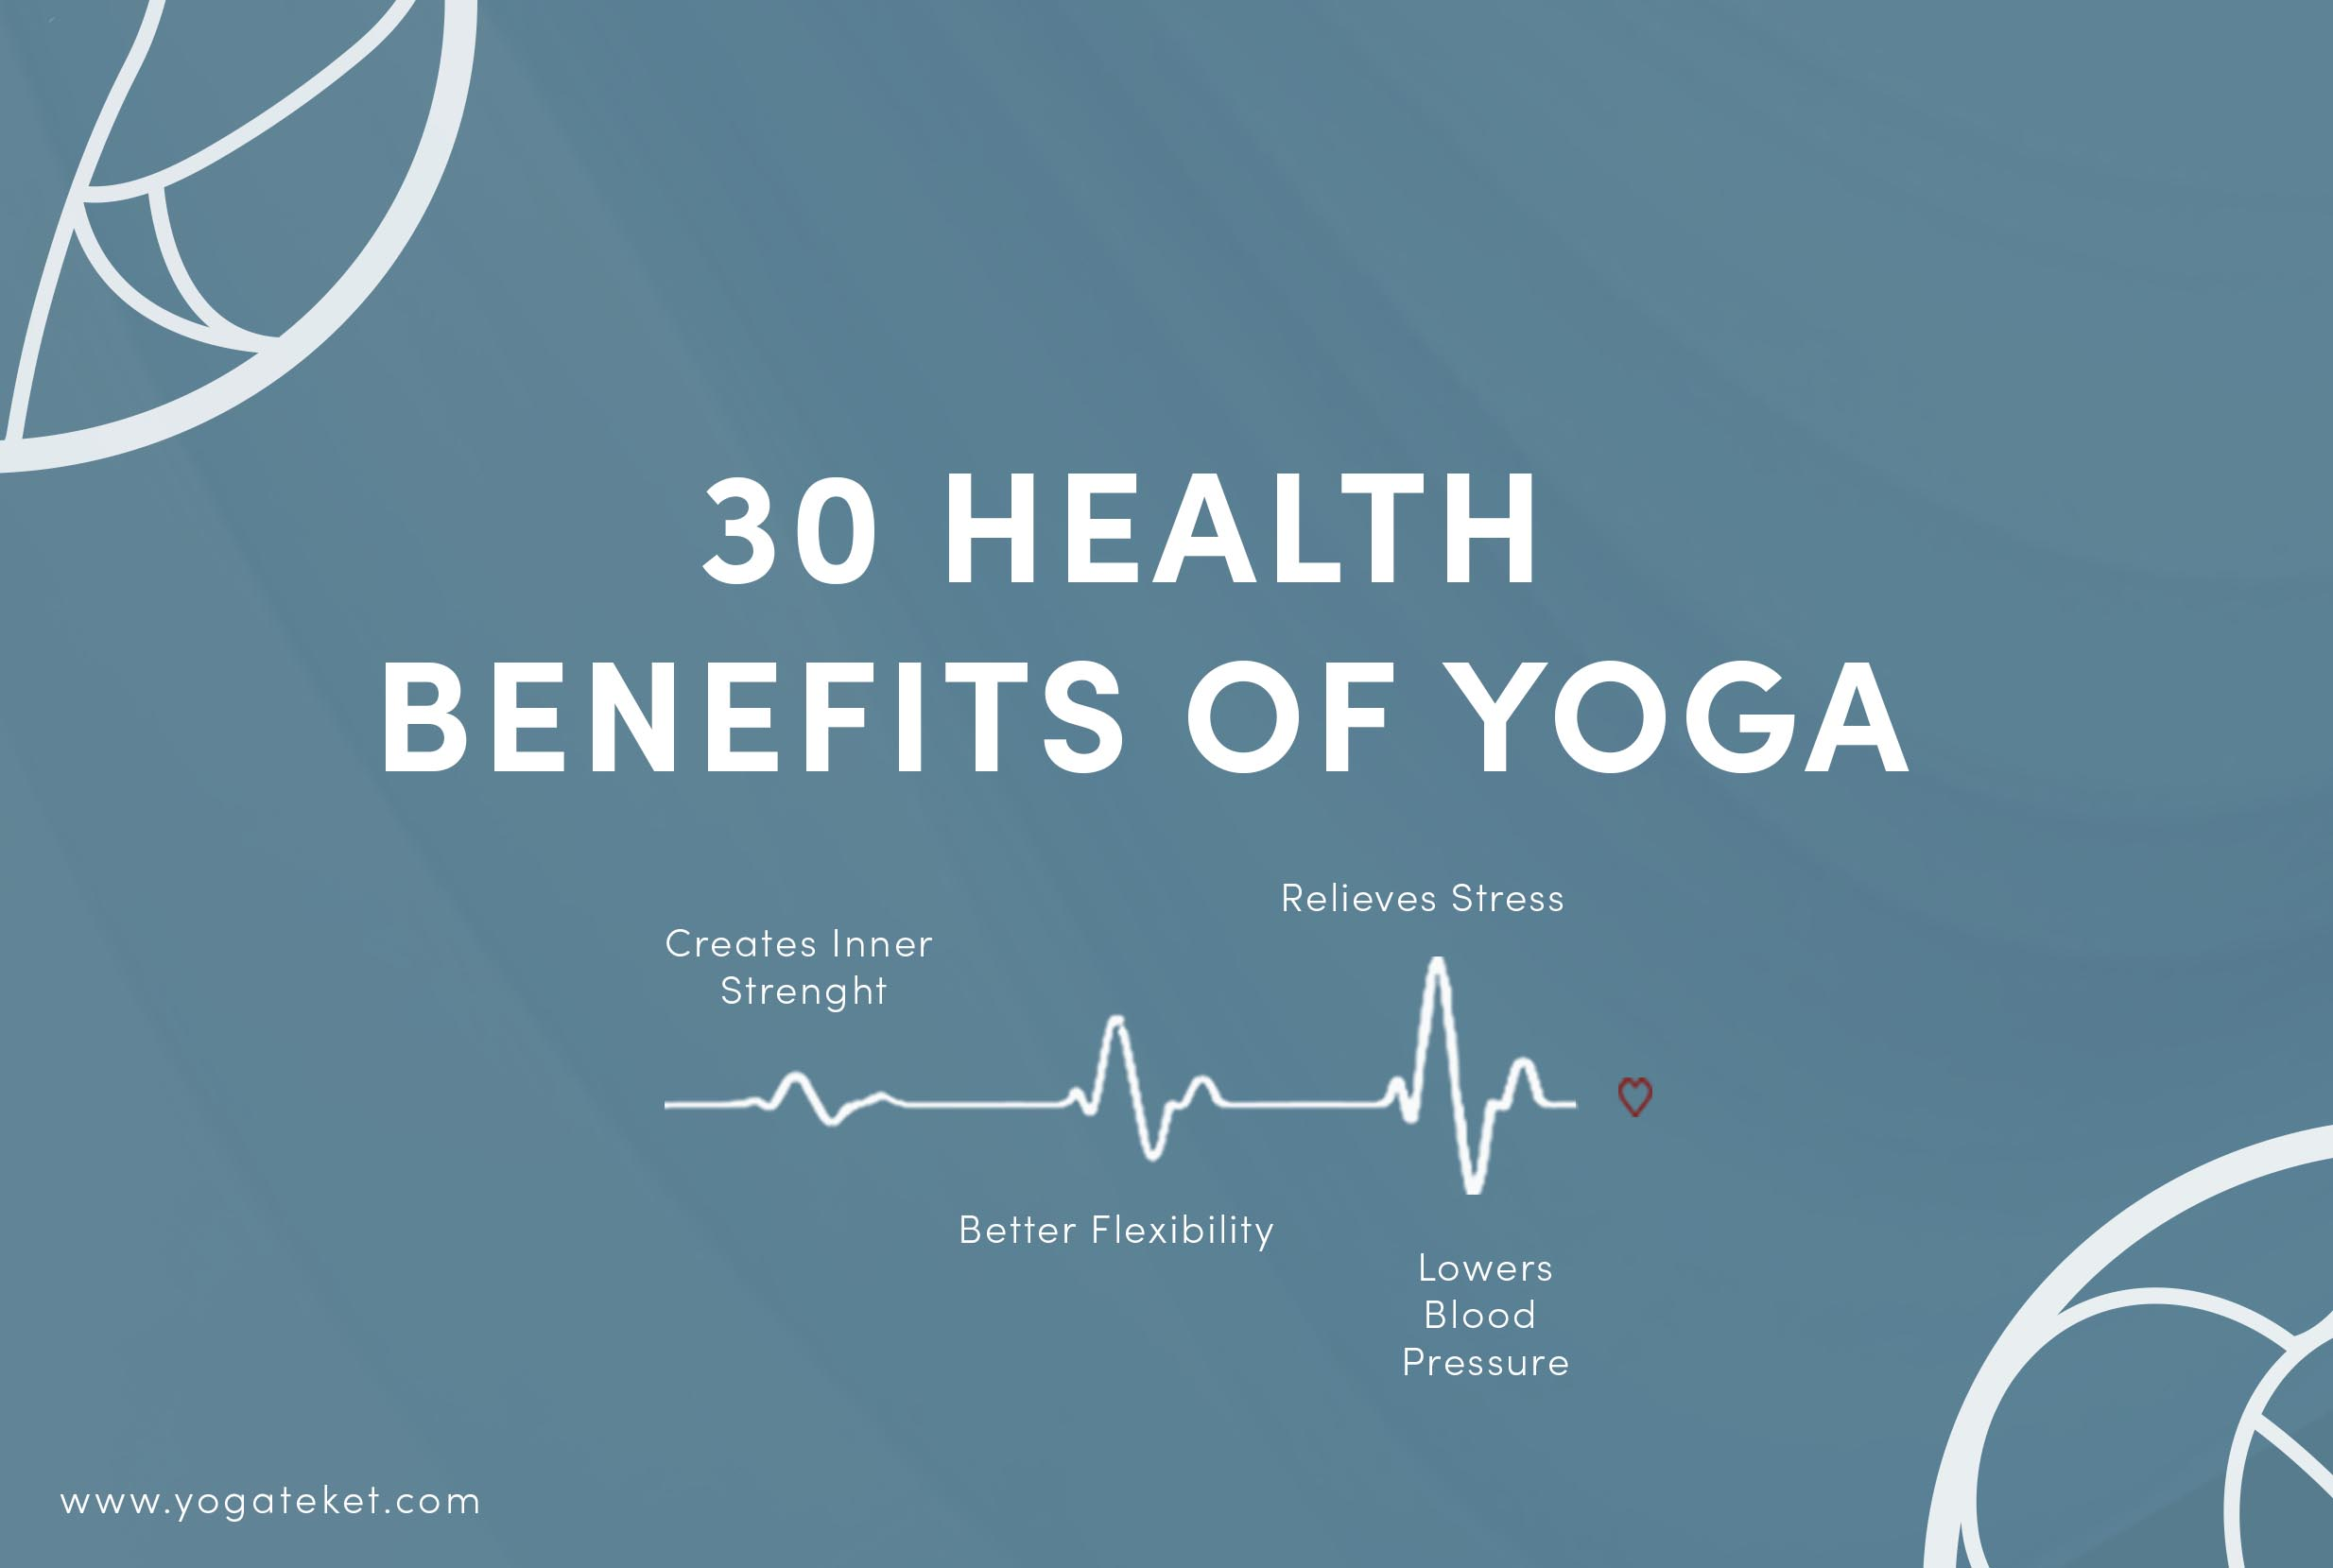 30 Health Benefits of Yoga - Yoga benefits List